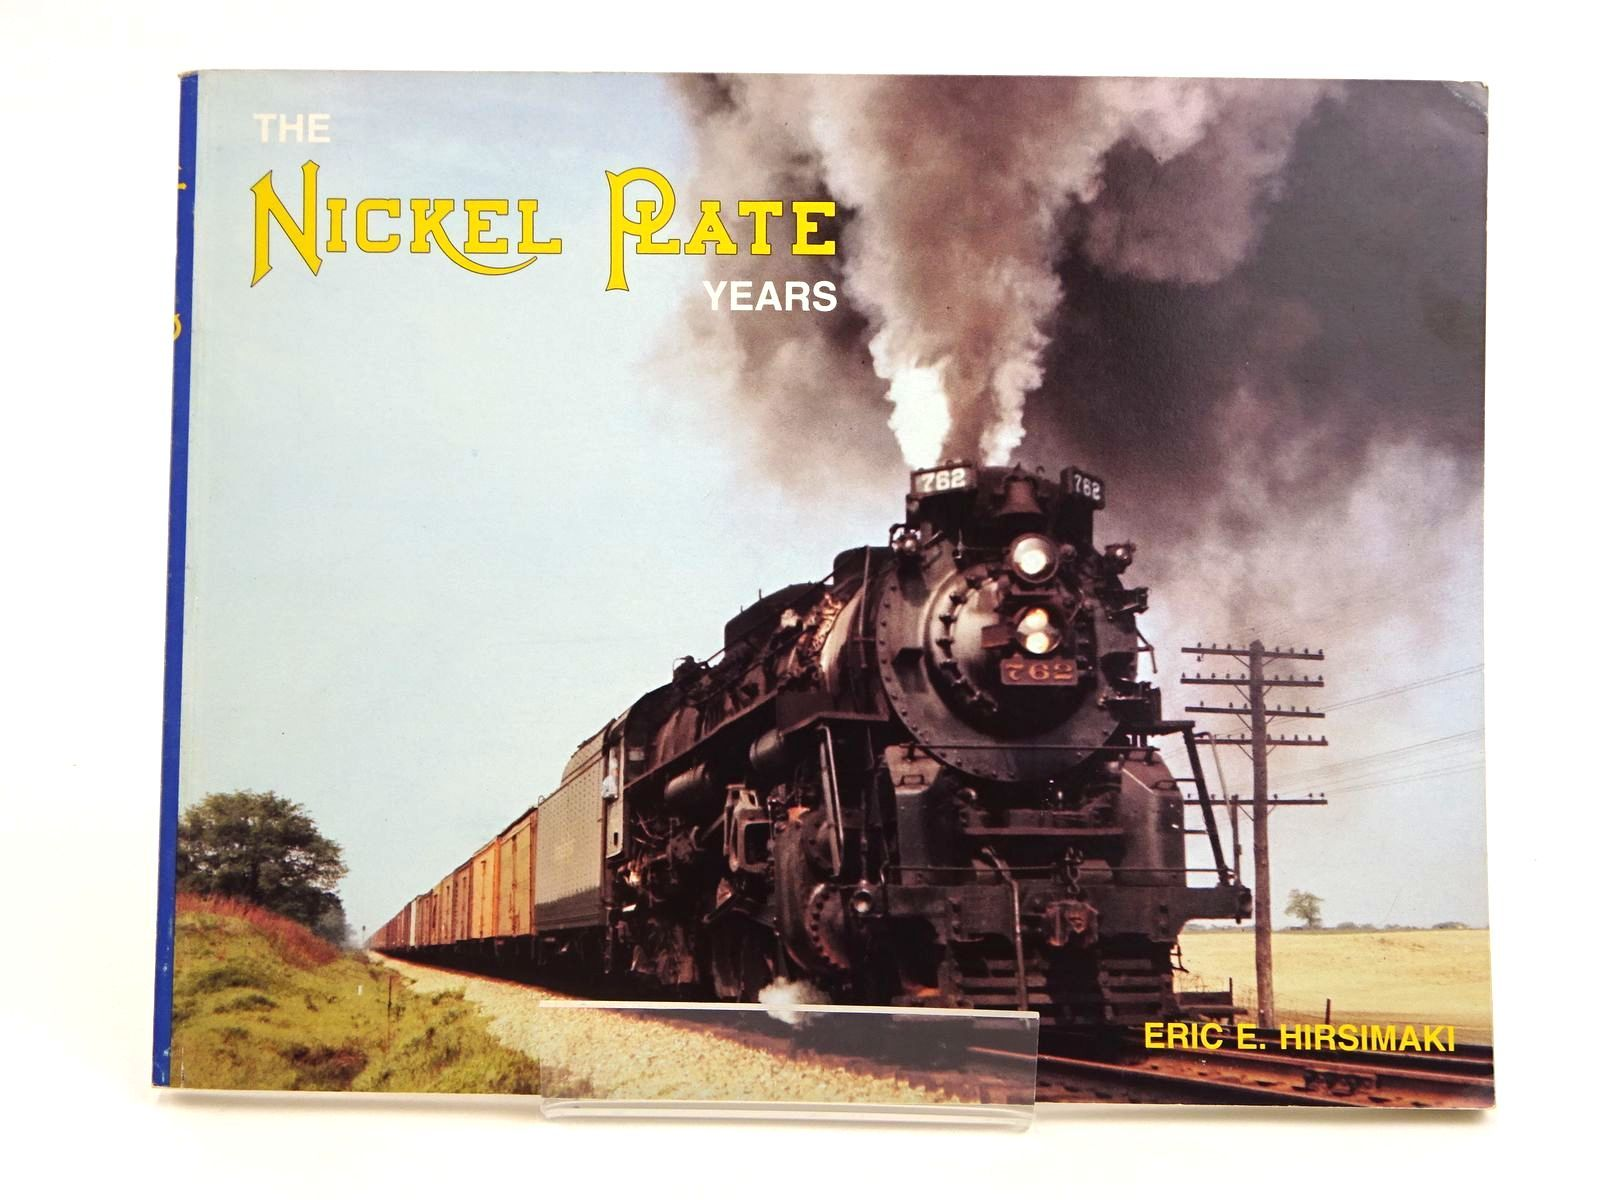 Photo of THE NICKEL PLATE YEARS written by Hirsimaki, Eric E. published by Mileposts Publishing Company (STOCK CODE: 1818092)  for sale by Stella & Rose's Books